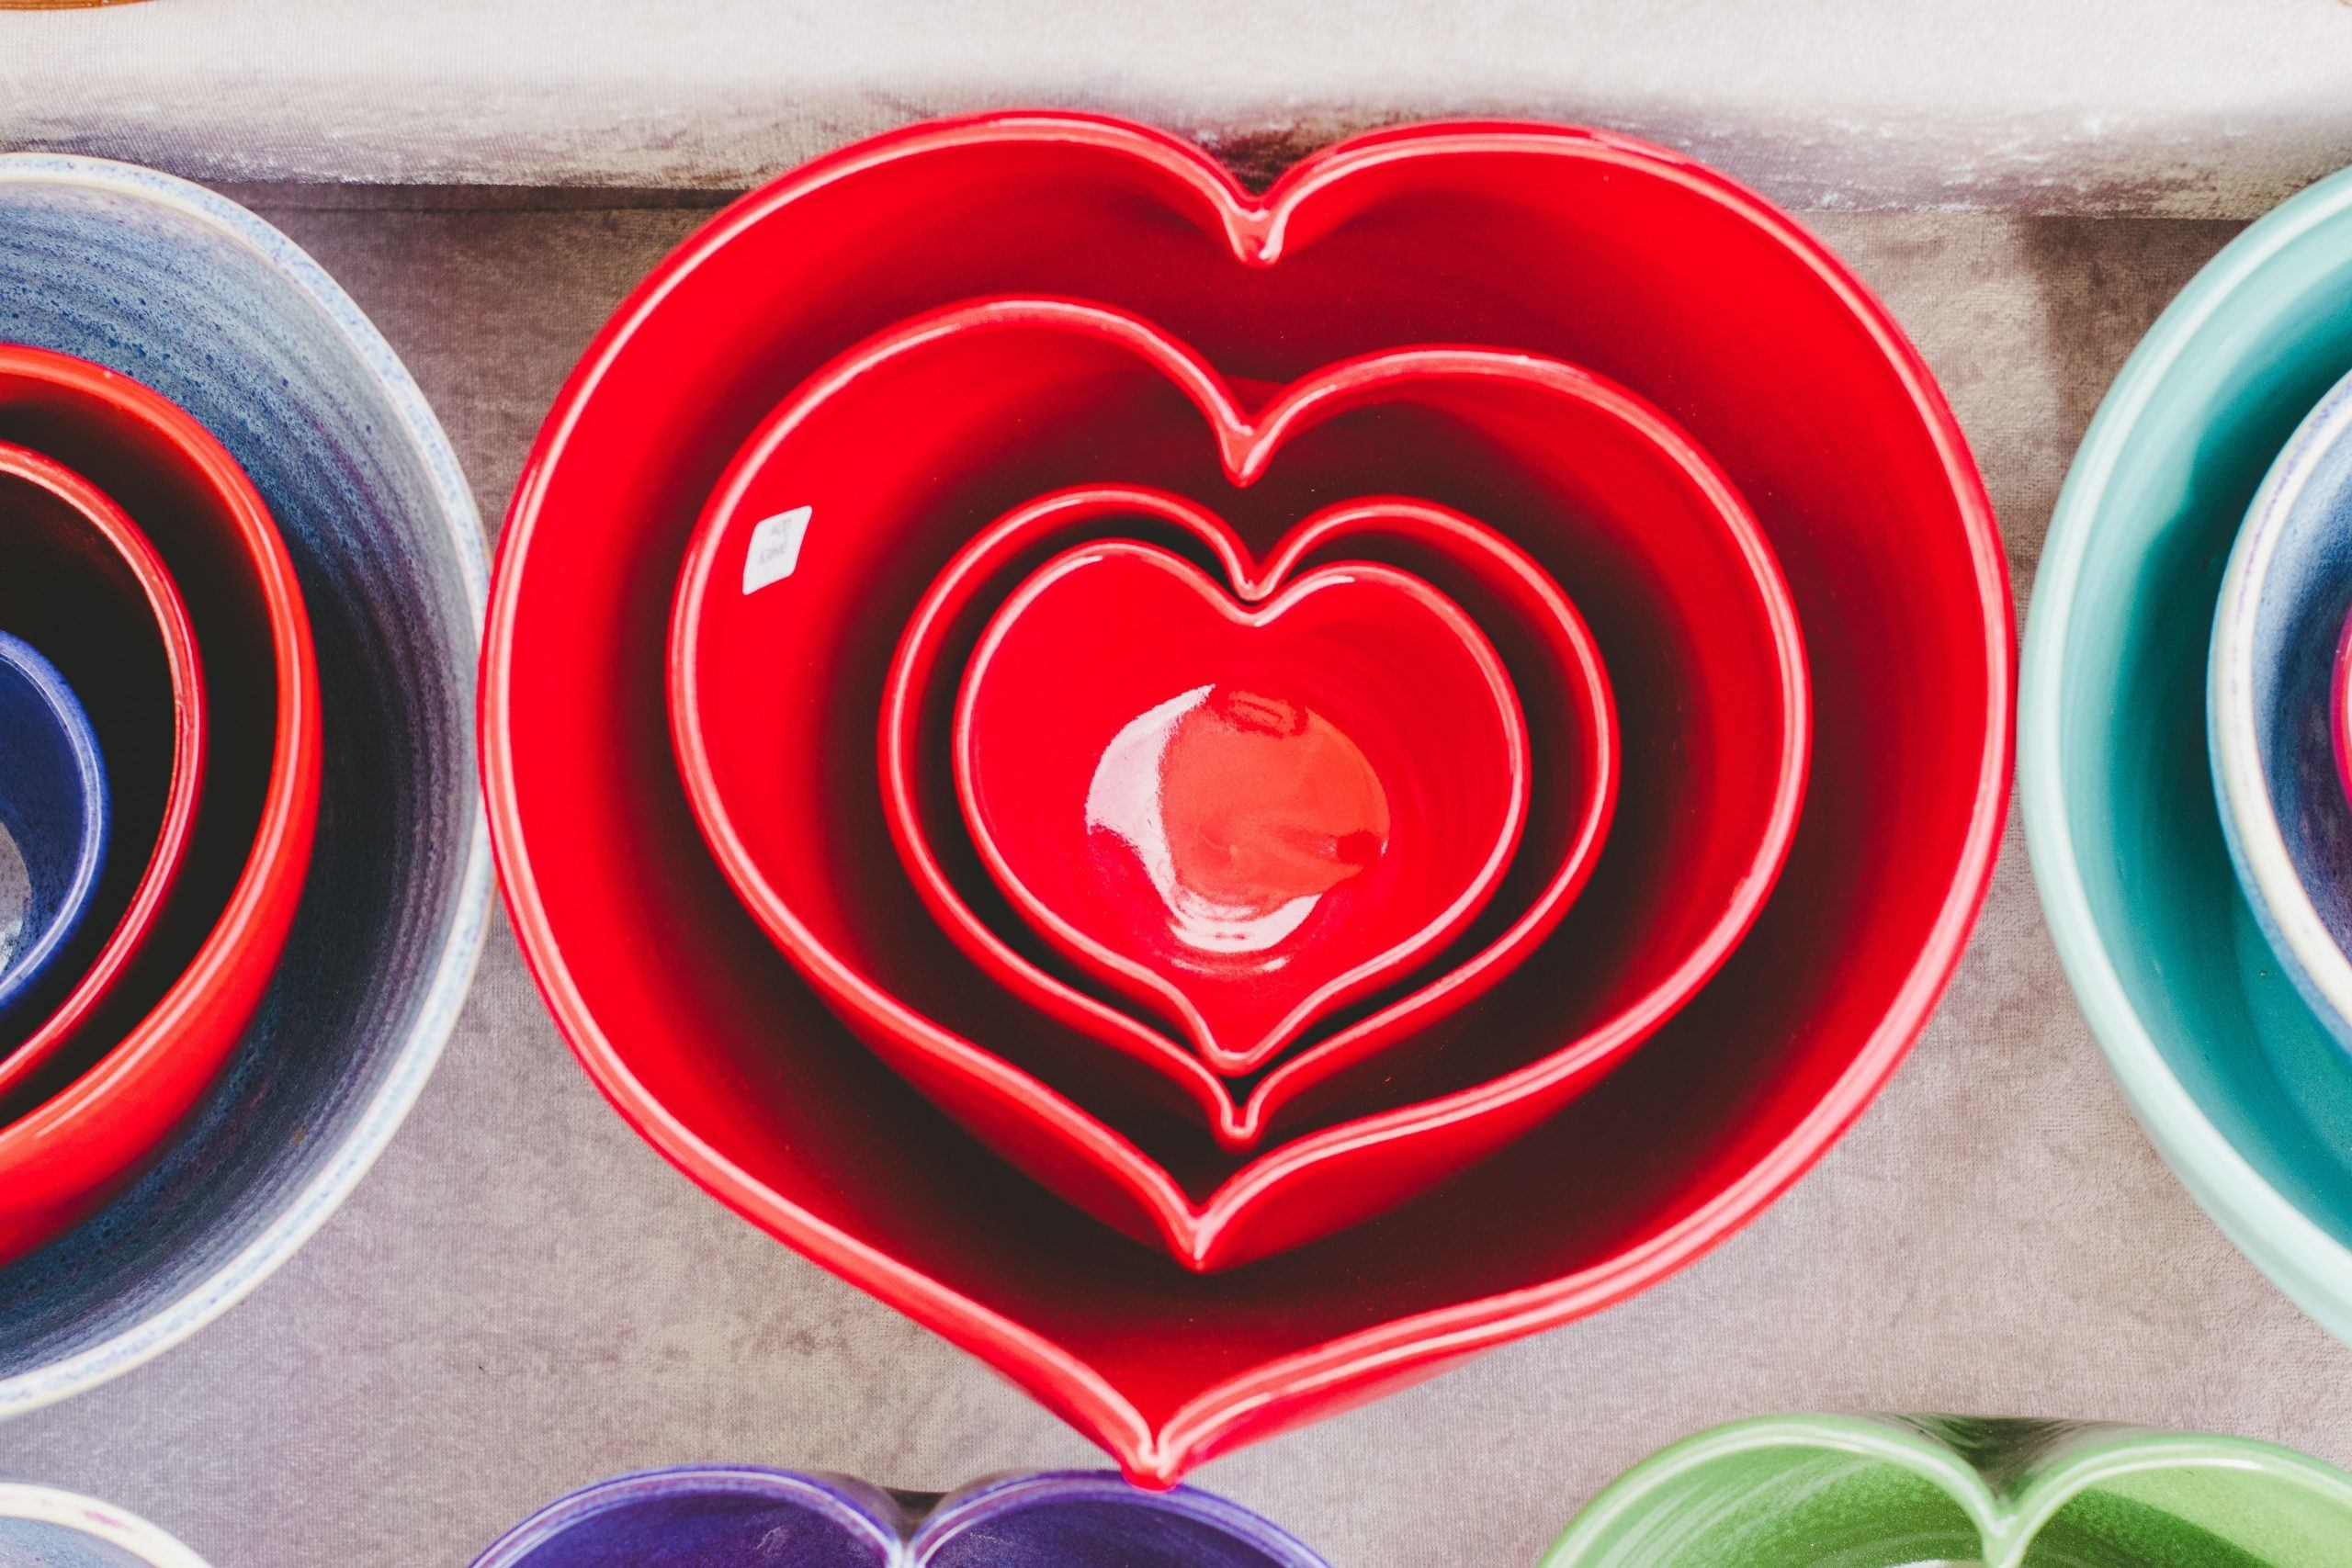 the collection sizes of heart ceramic bowls